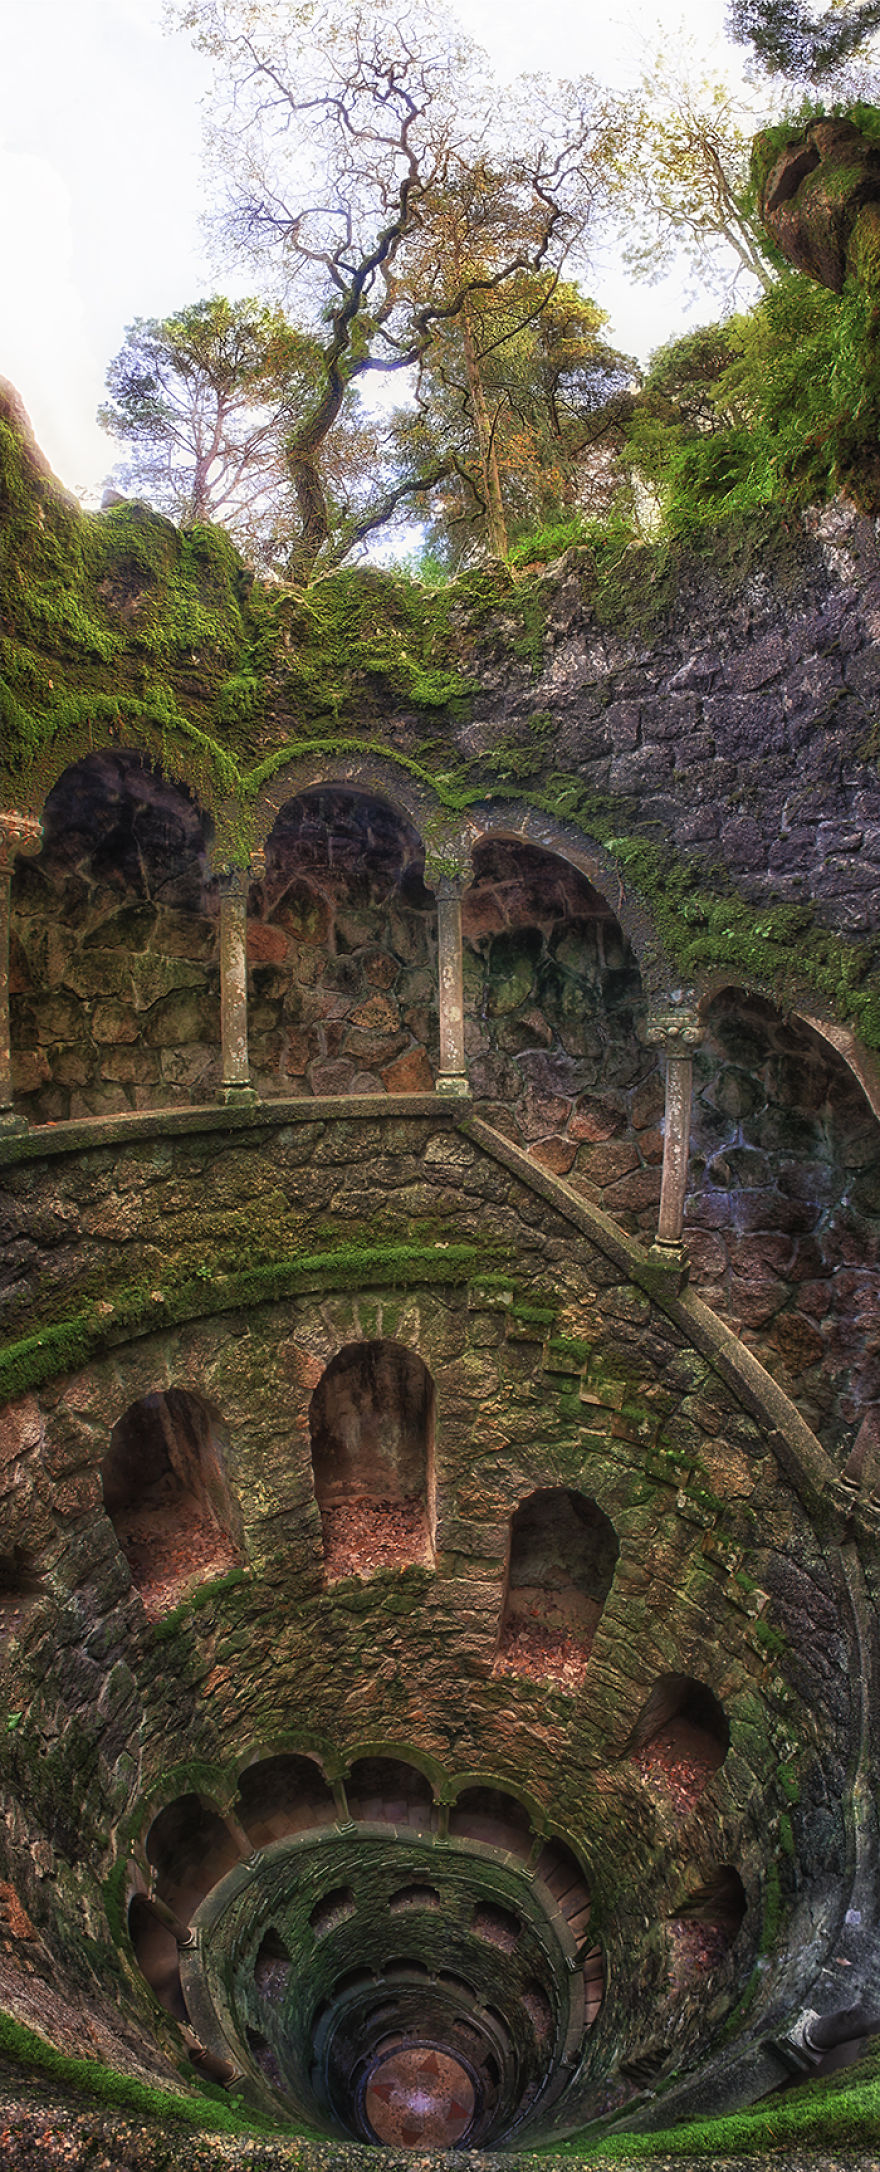 Palace-of-Mystery-Quinta-da-Regaleira-by-Taylor-Moore23__880